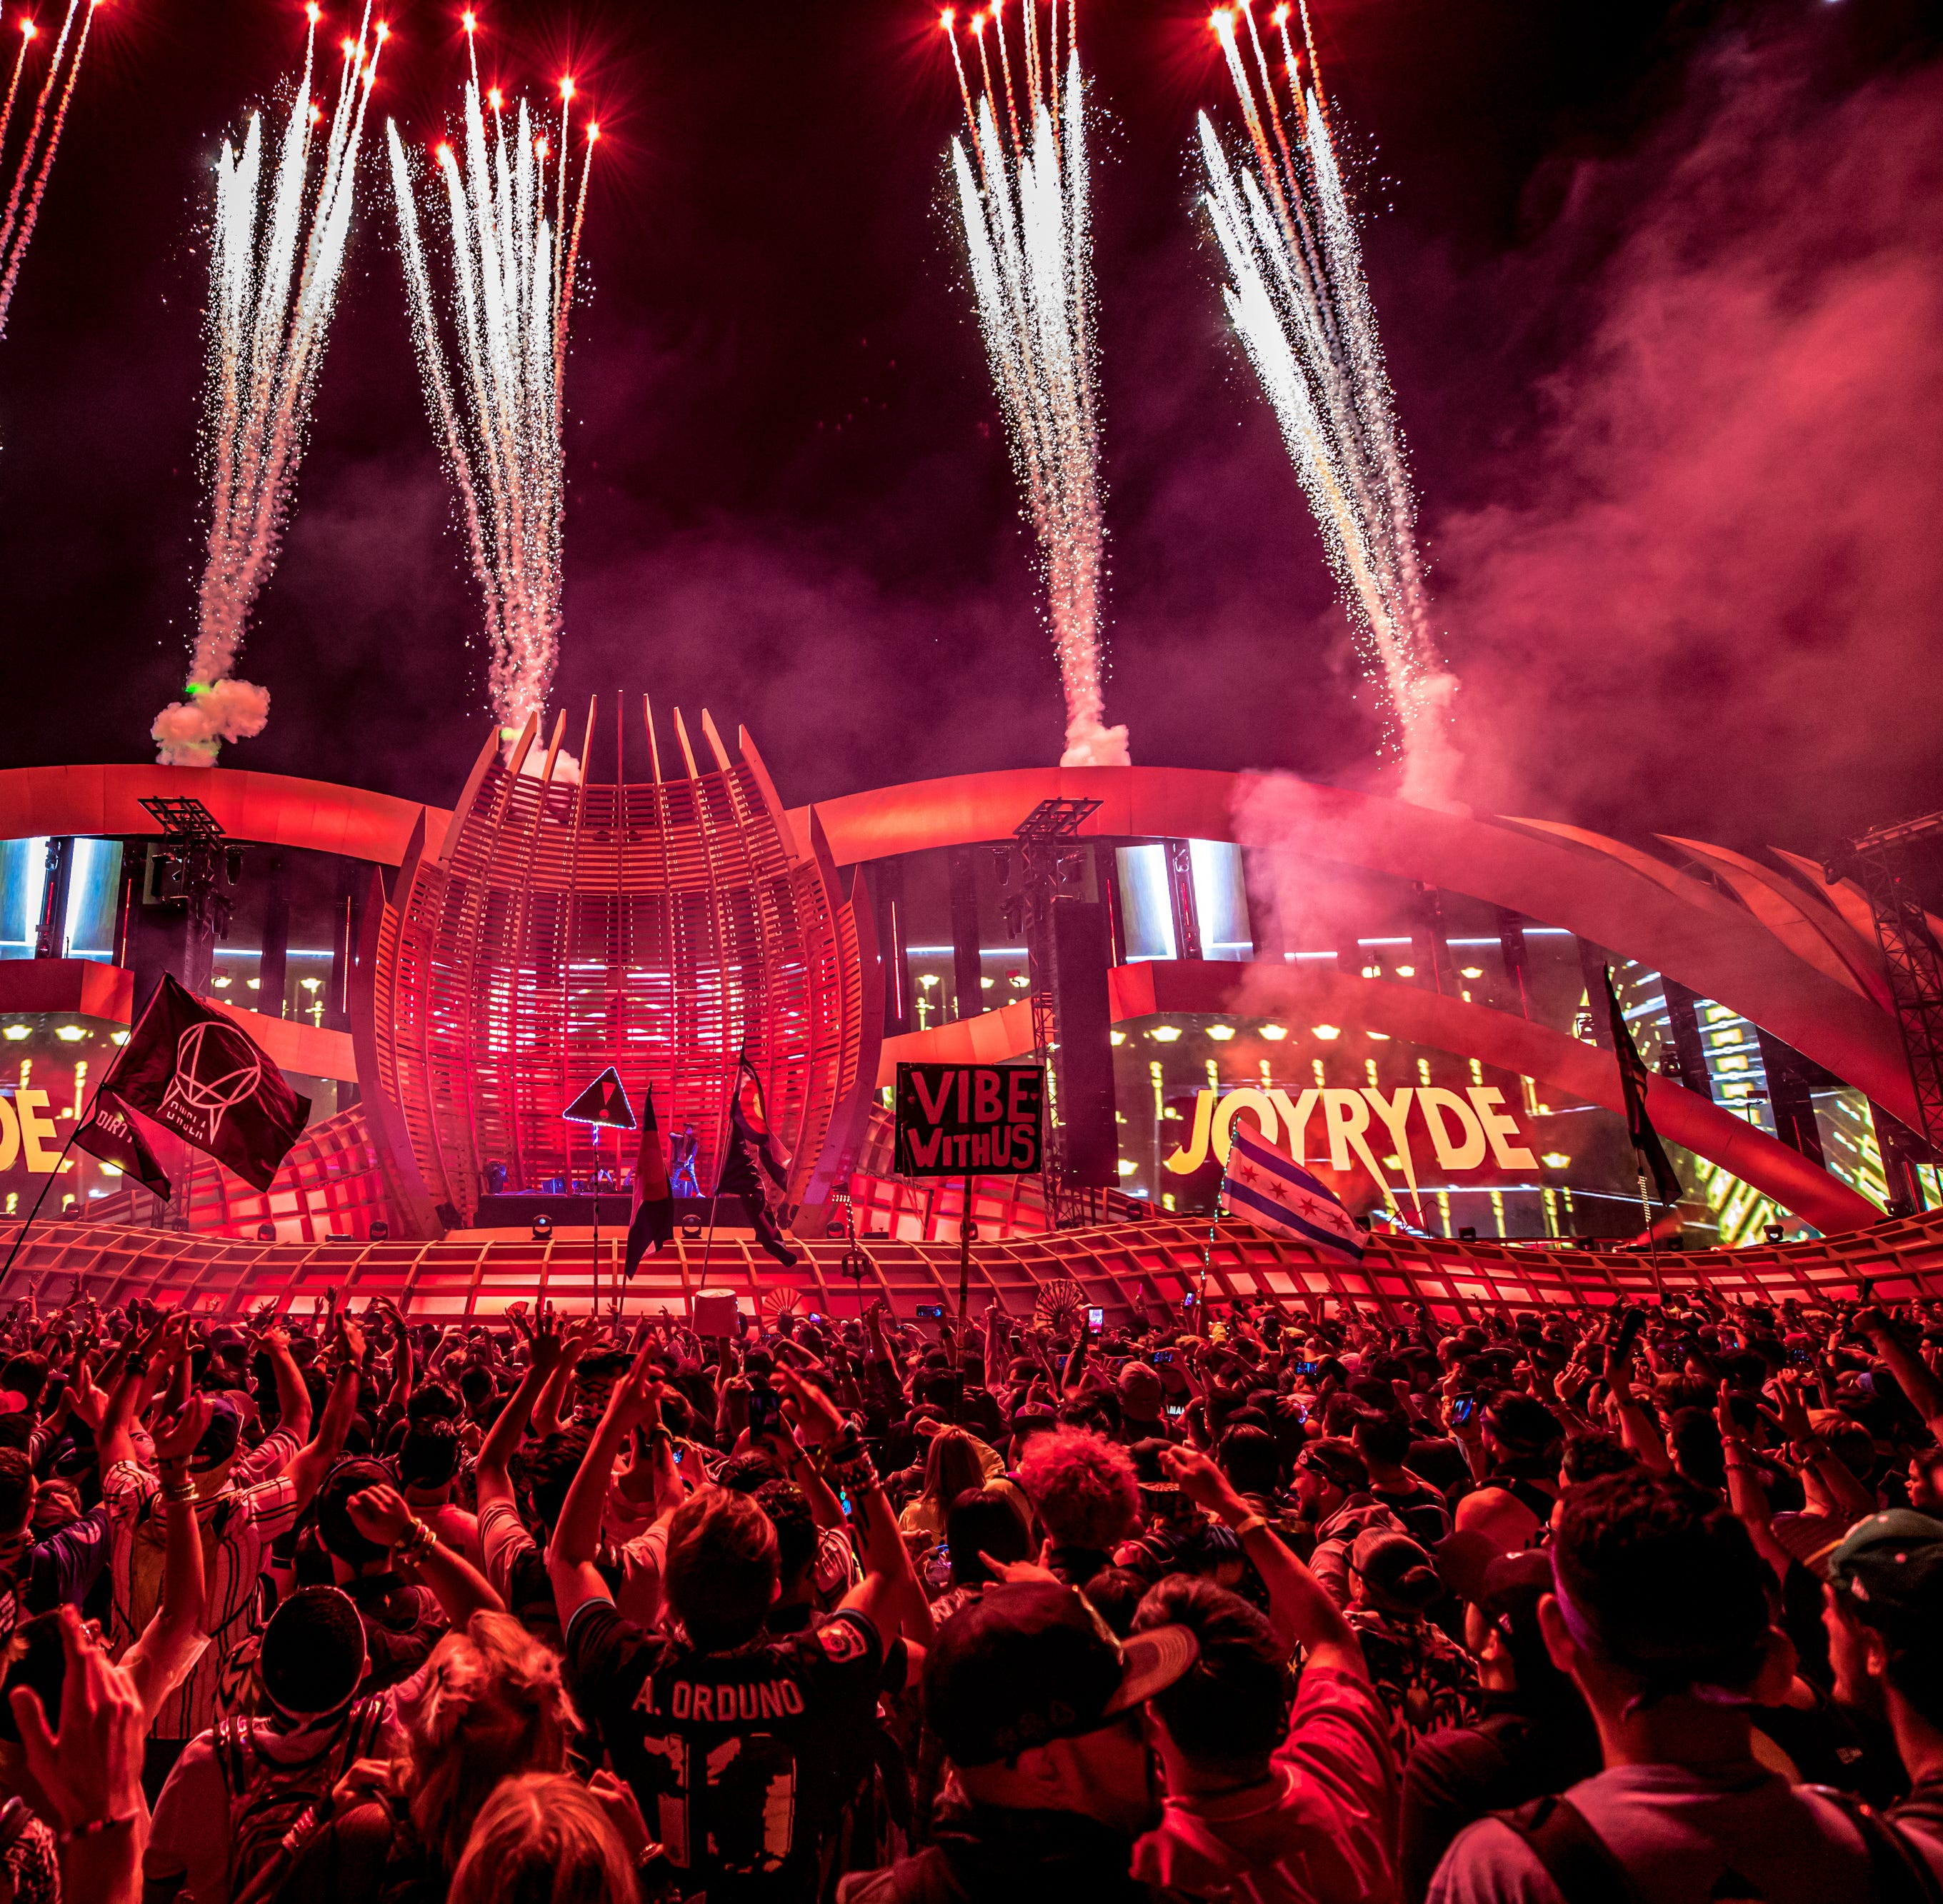 Enjoy the show! Watch the Electric Daisy Carnival 2019 Sunday live streams here!